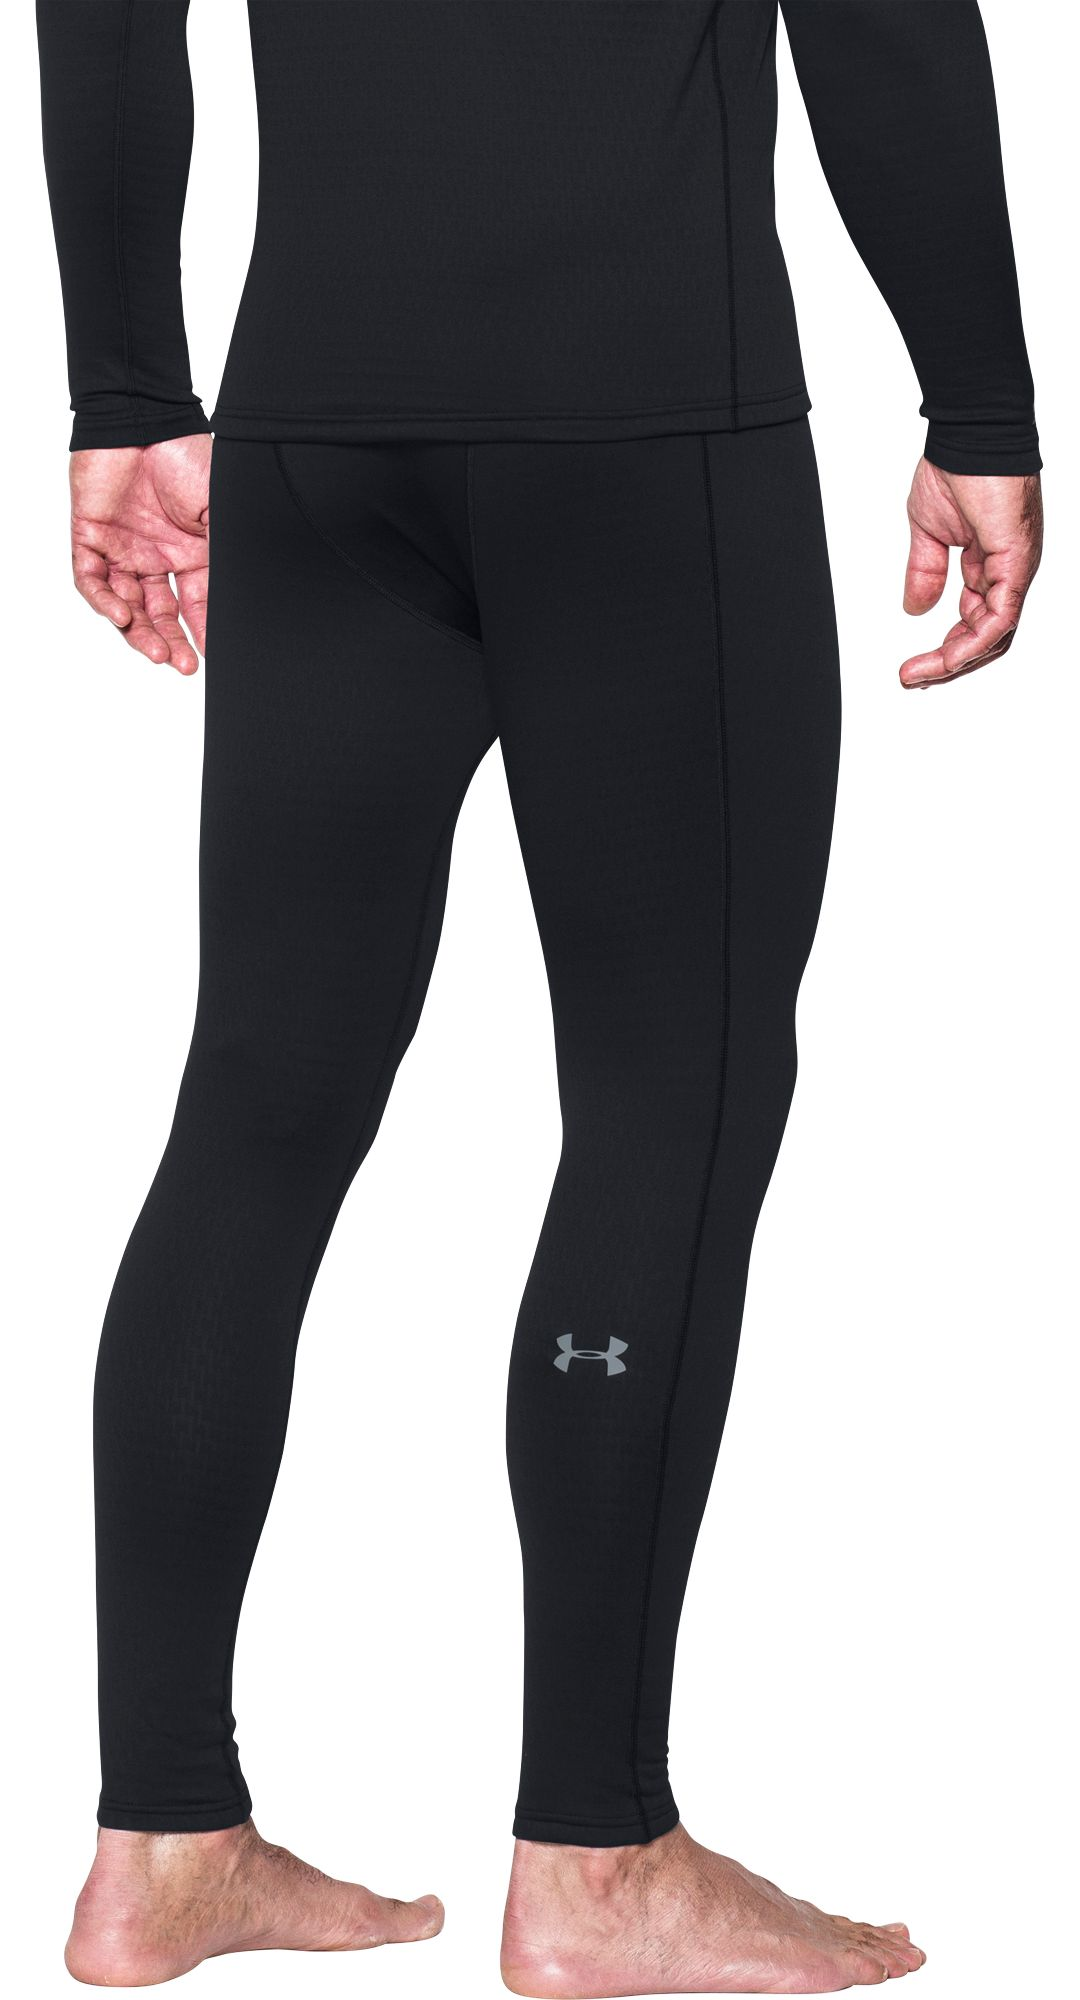 3f02cd12fdefee Under Armour Men's 2.0 Base Layer Leggings | DICK'S Sporting Goods